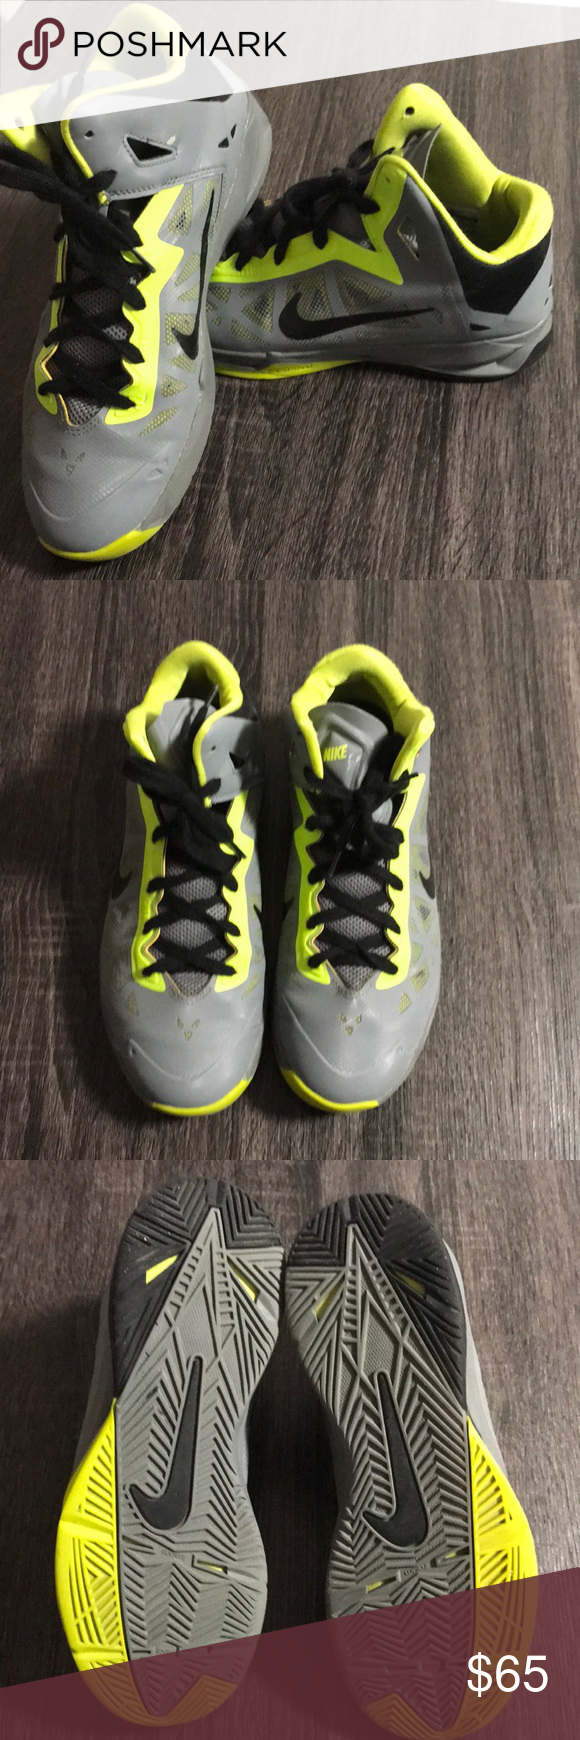 brand new 4bc56 afdcb Nike Zoom Hyperchaos Size  8 Colors  Cool Grey Black Atomic Green, Great  Condition! Only worn a few times. Nike Shoes Athletic Shoes